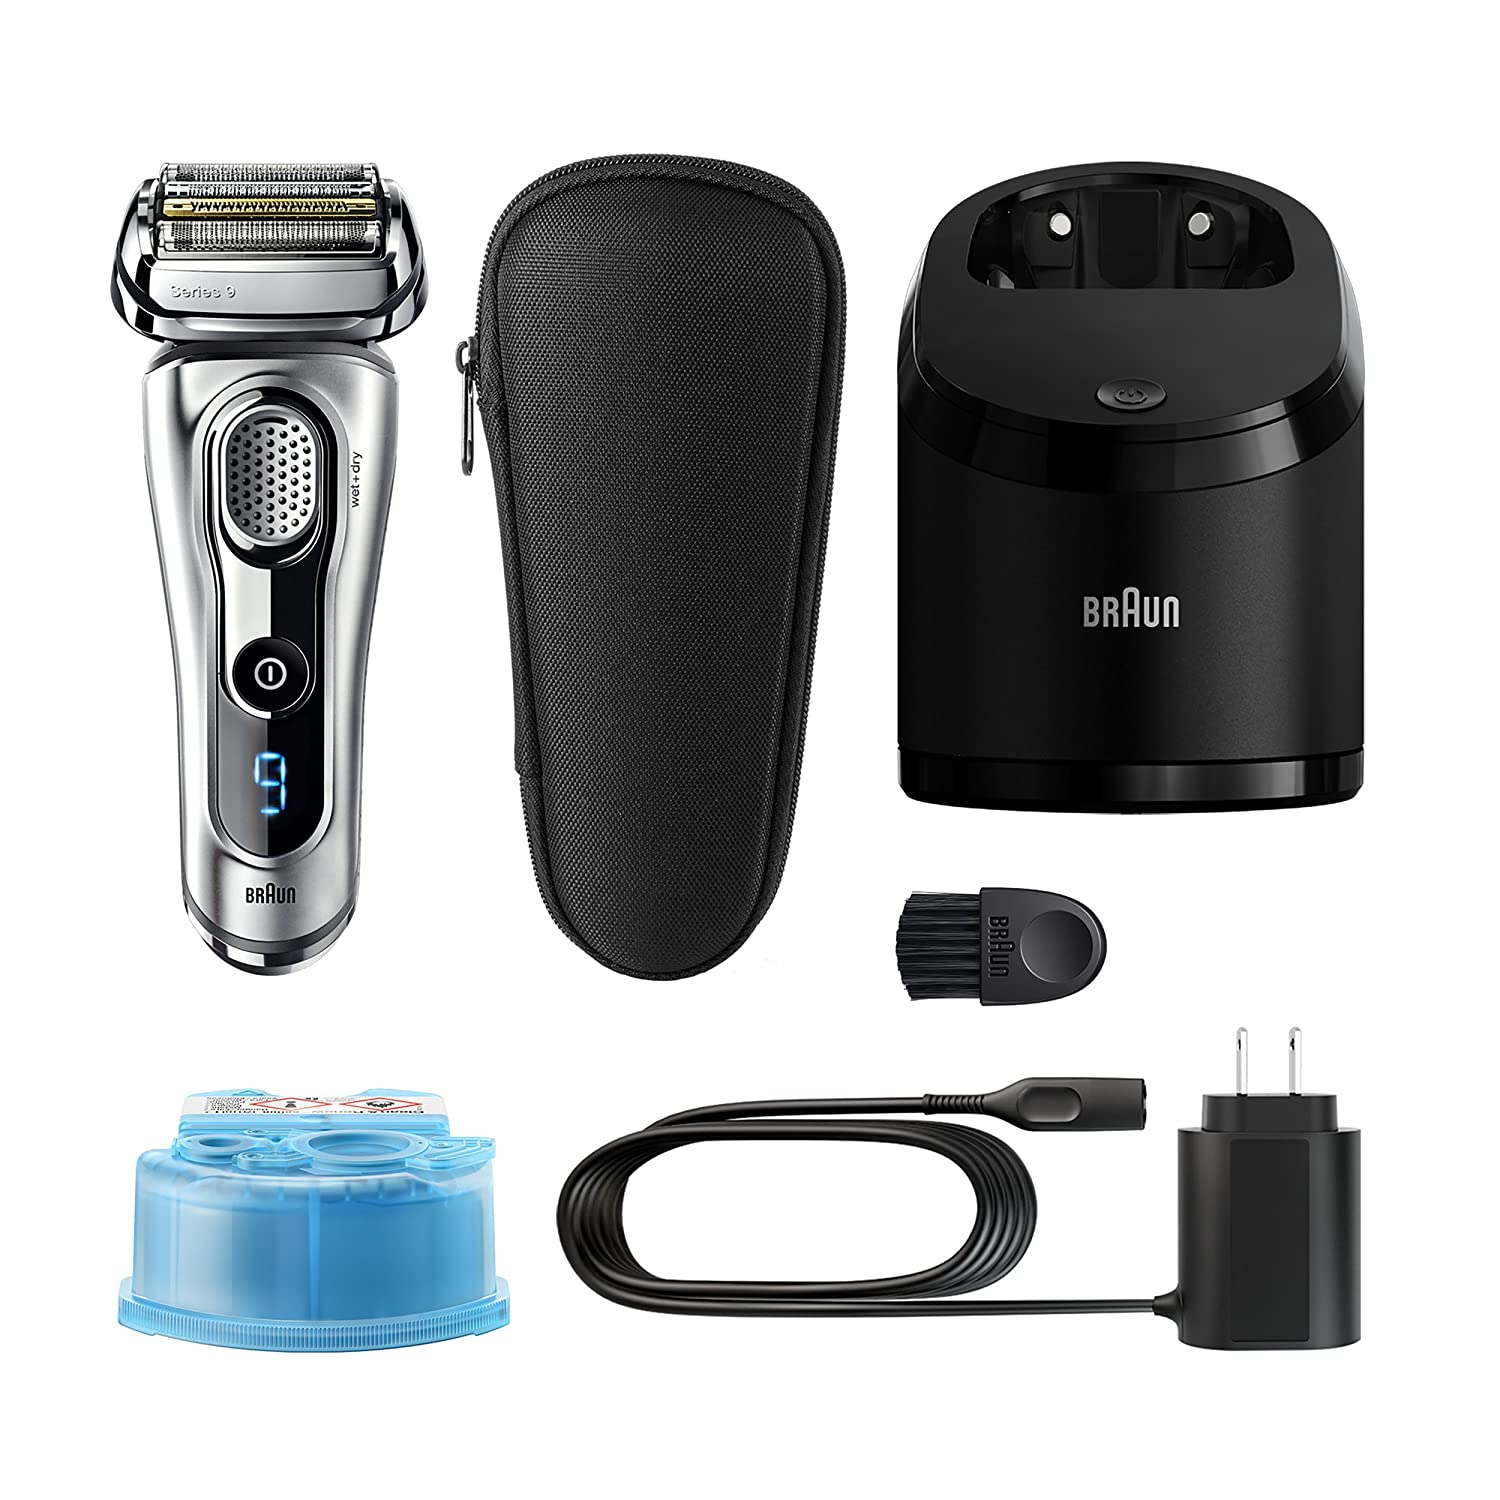 Best Foil Shaver in 2020: Reviews & Buying Guide 21